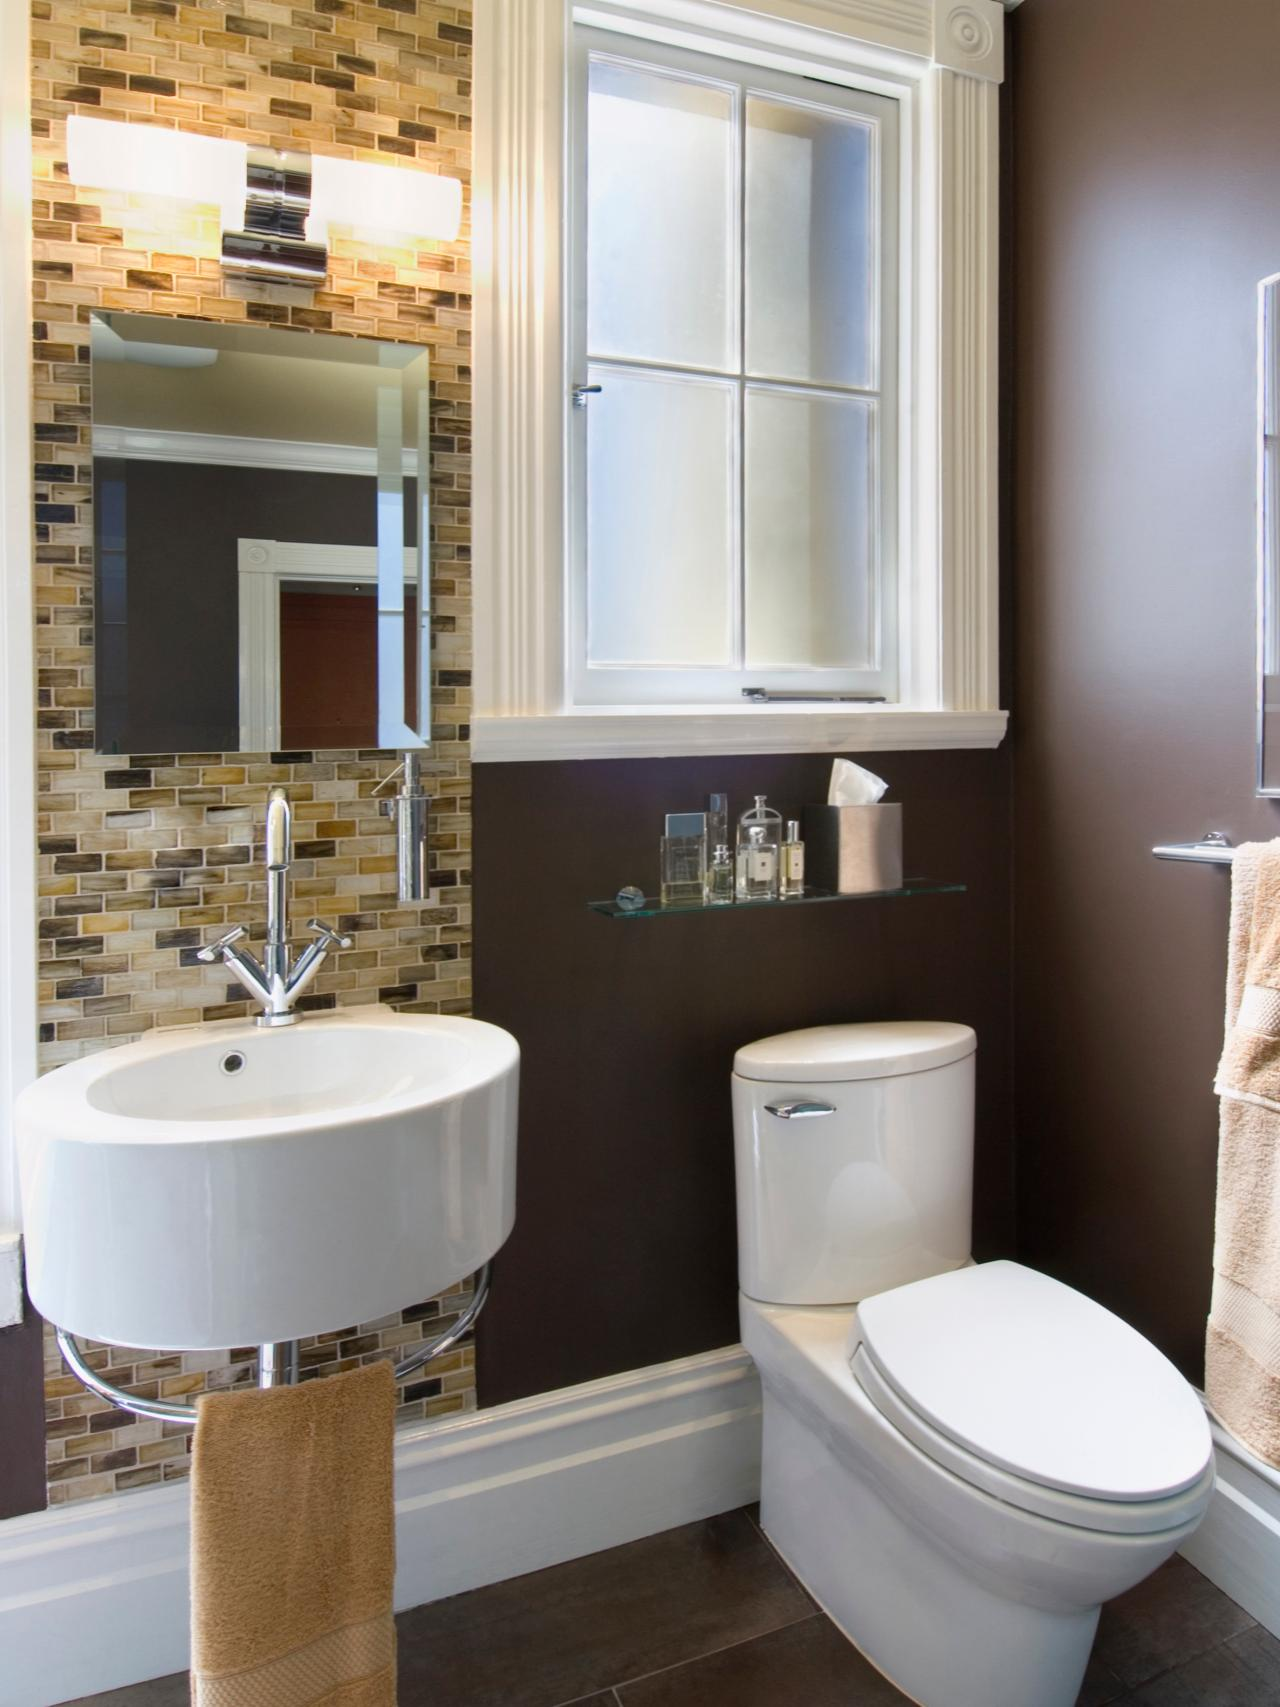 Bathroom designs for small master bathrooms - Focus On Storage